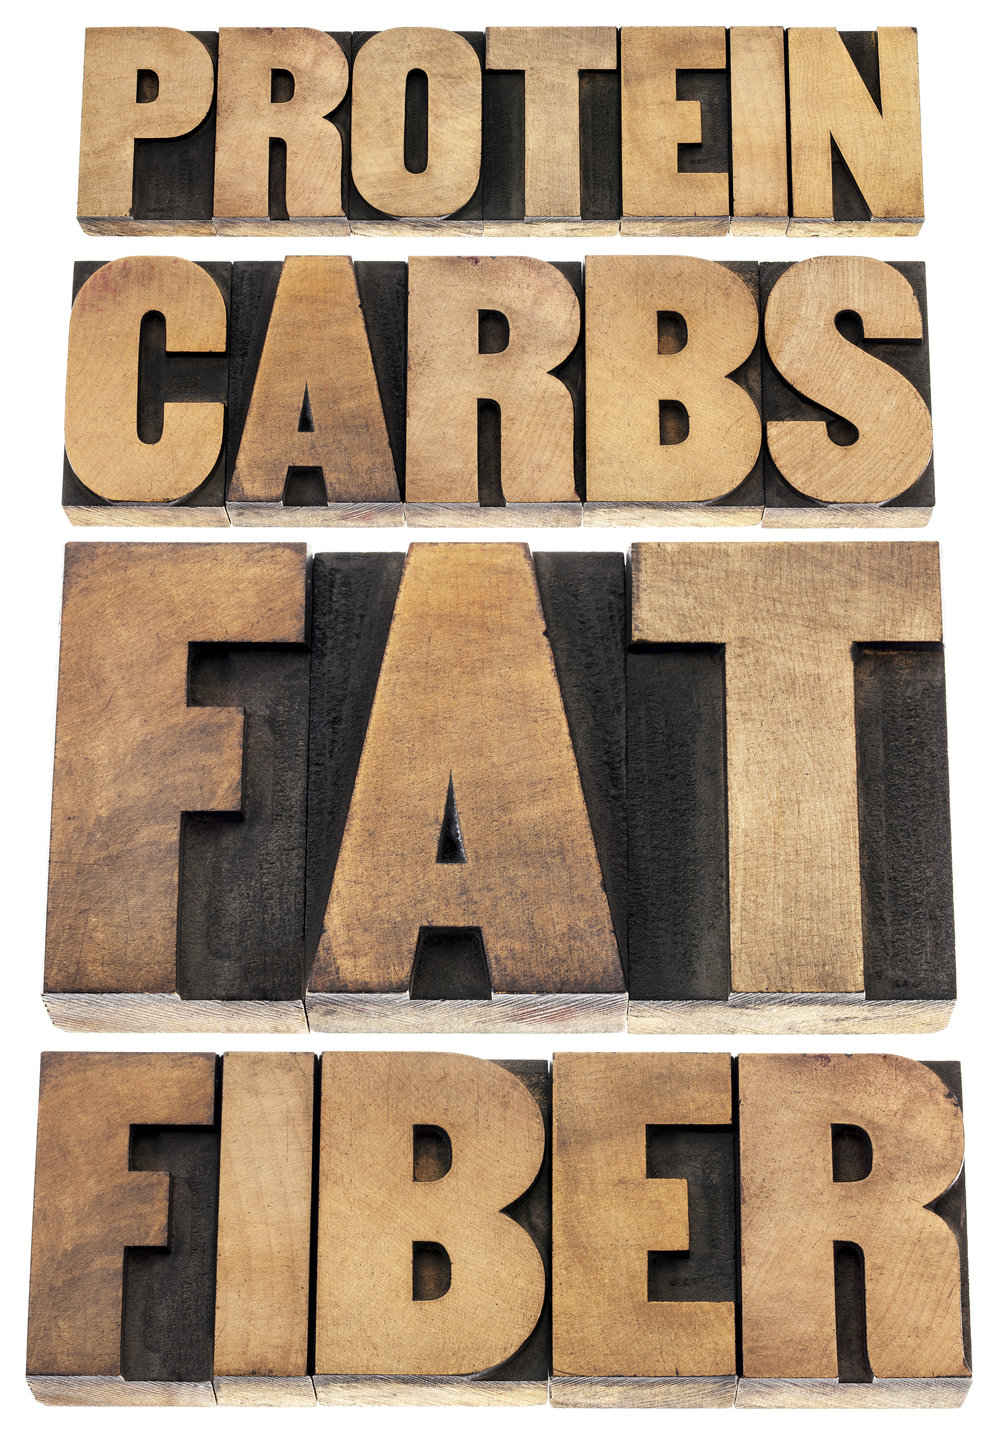 BB Protein, Carbs, Fat, Fiber.jpg